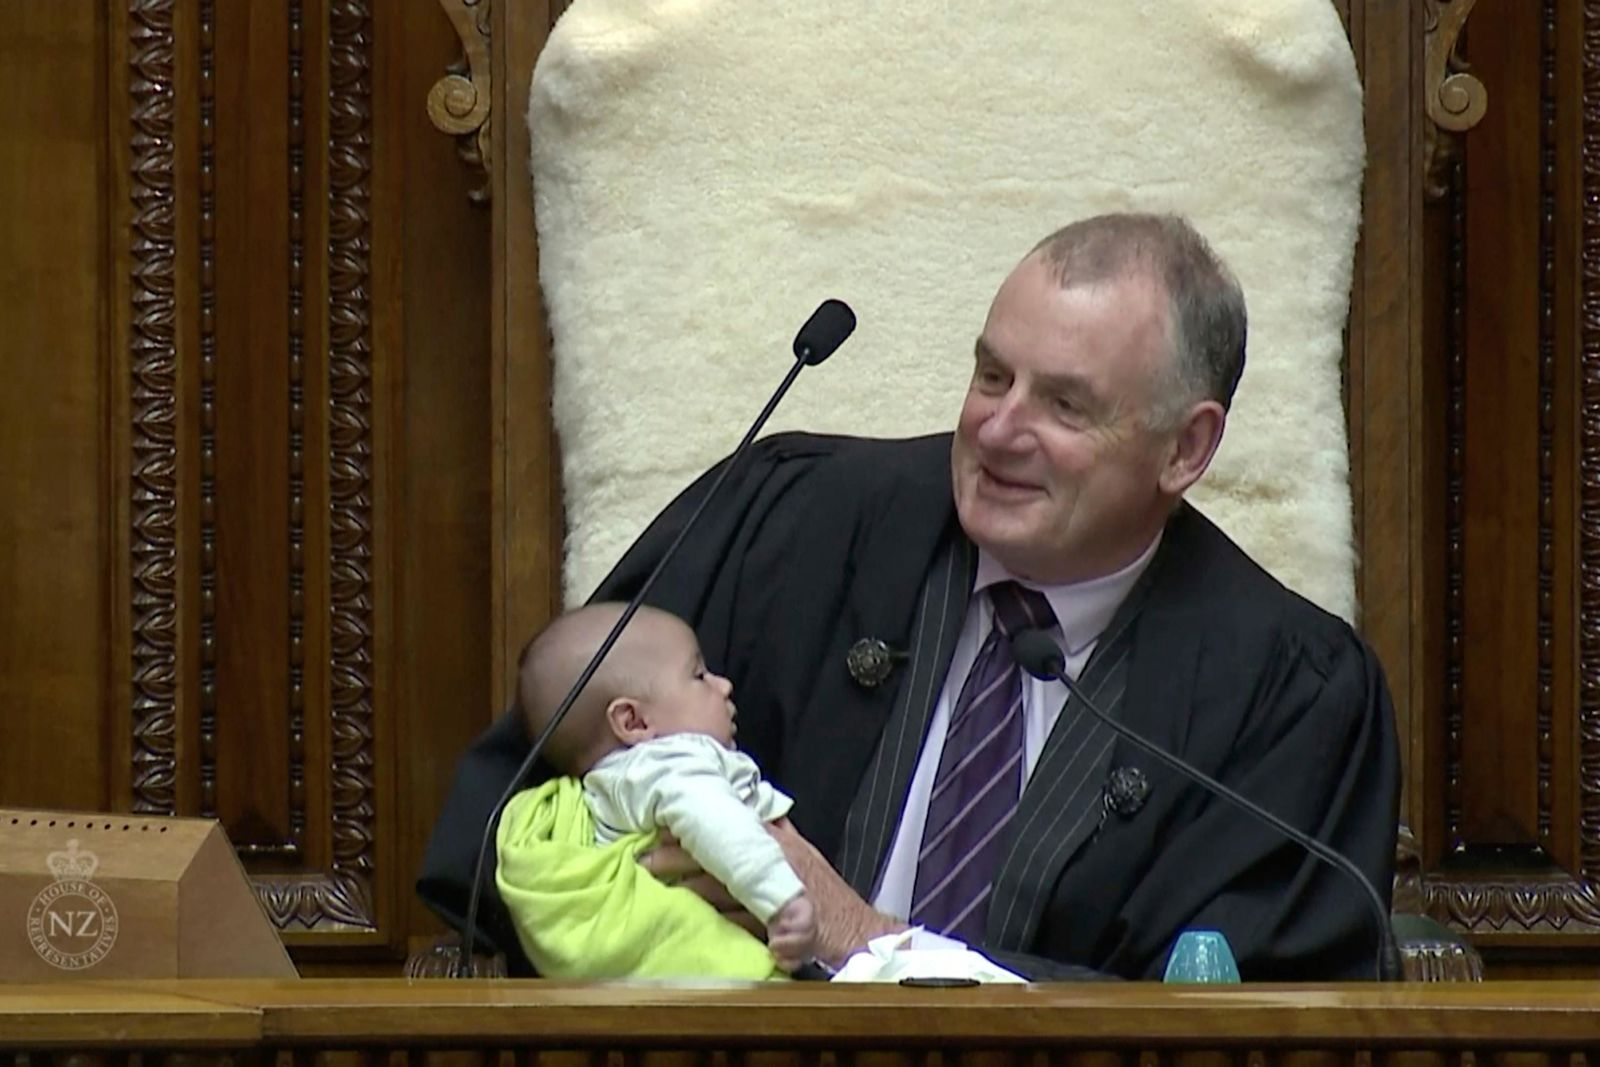 In this Wednesday, Aug. 21, 2019, image from video, New Zealand House Speaker Trevor Mallard cradles lawmaker Tamati Coffey's baby, Tutanekai Smith-Coffey, in his arms while presiding over a debate in parliament in Wellington, New Zealand. (Parliament TV via AP)